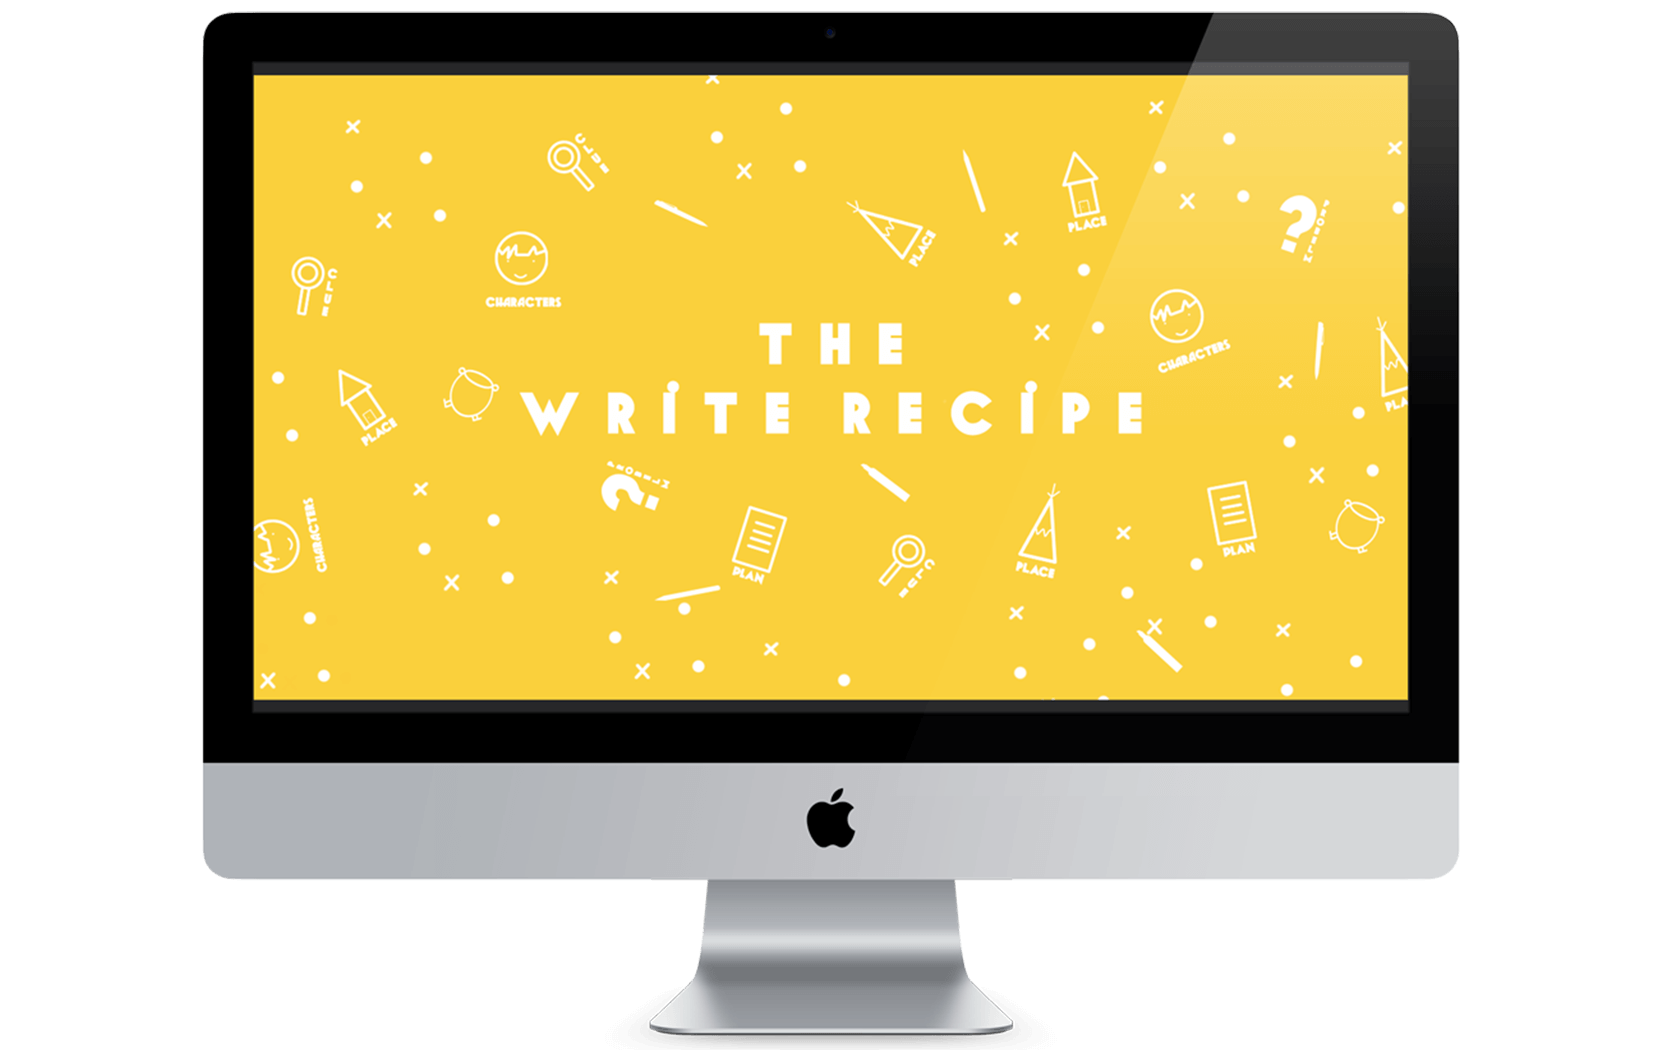 The Write Recipe - How to set up your story for success!